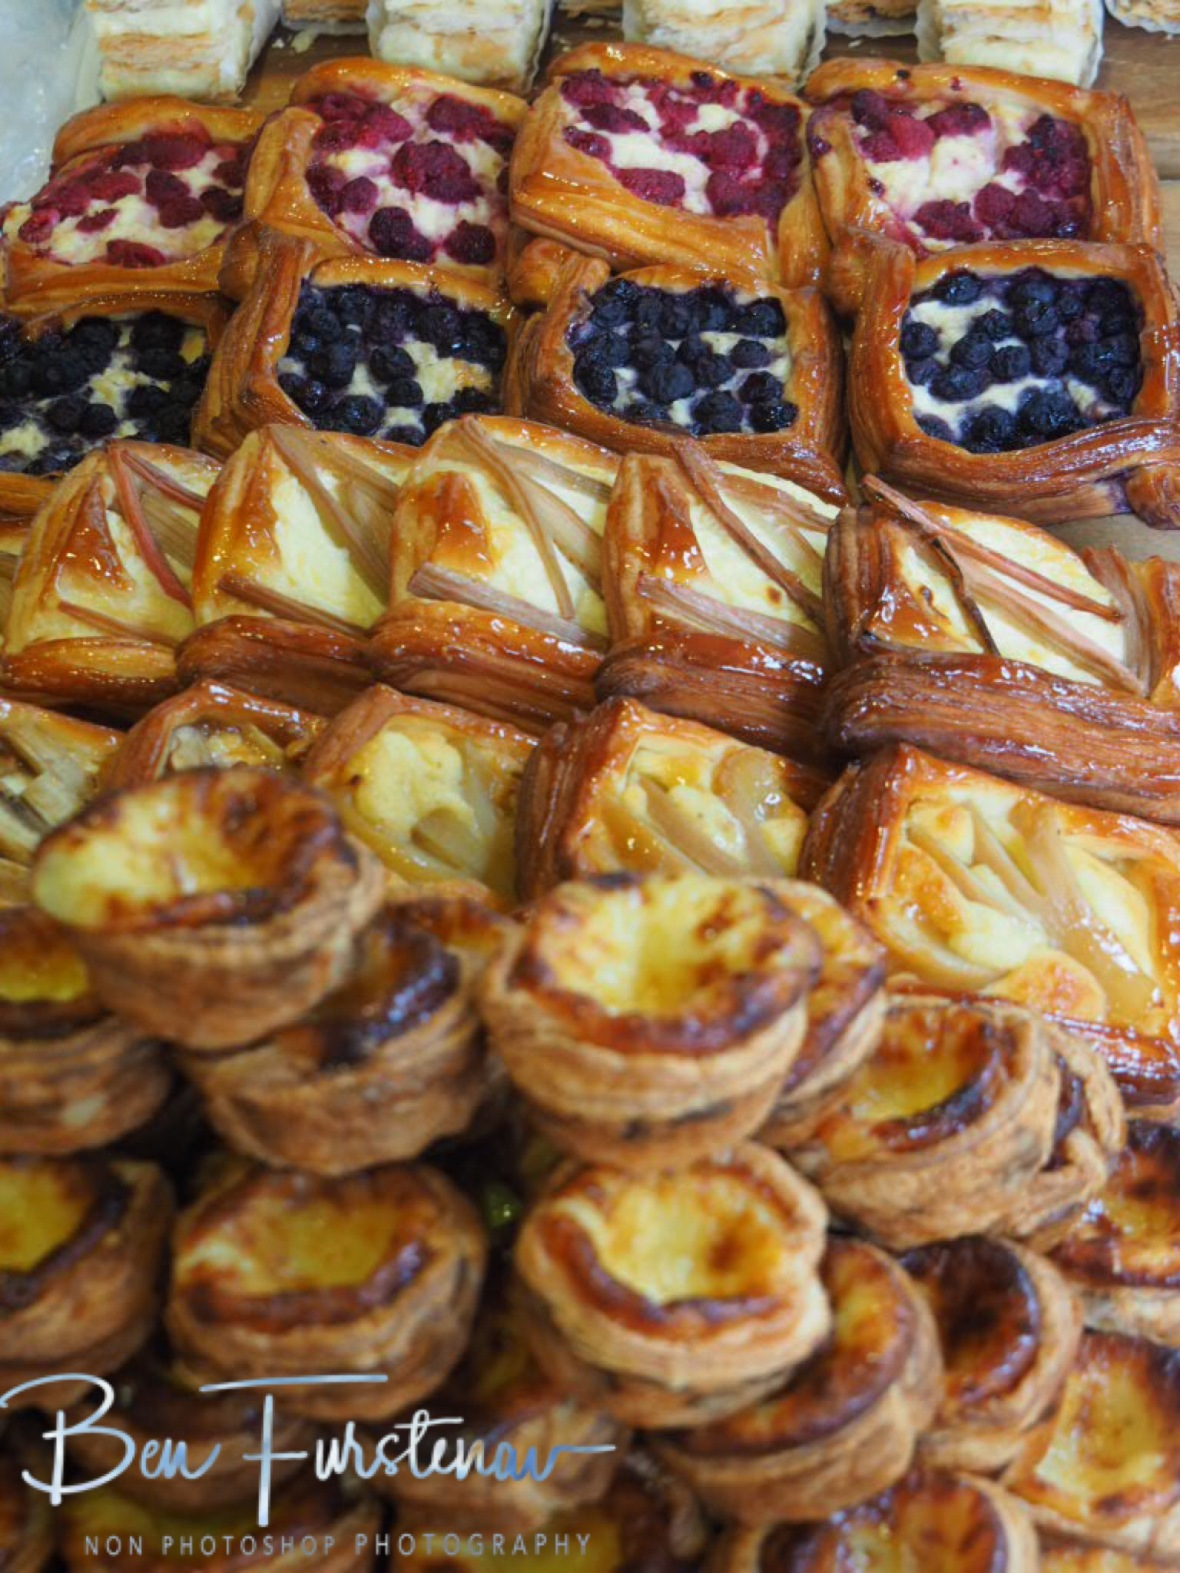 Pastry selection on market display, Newrybar, New South Wales, Australia